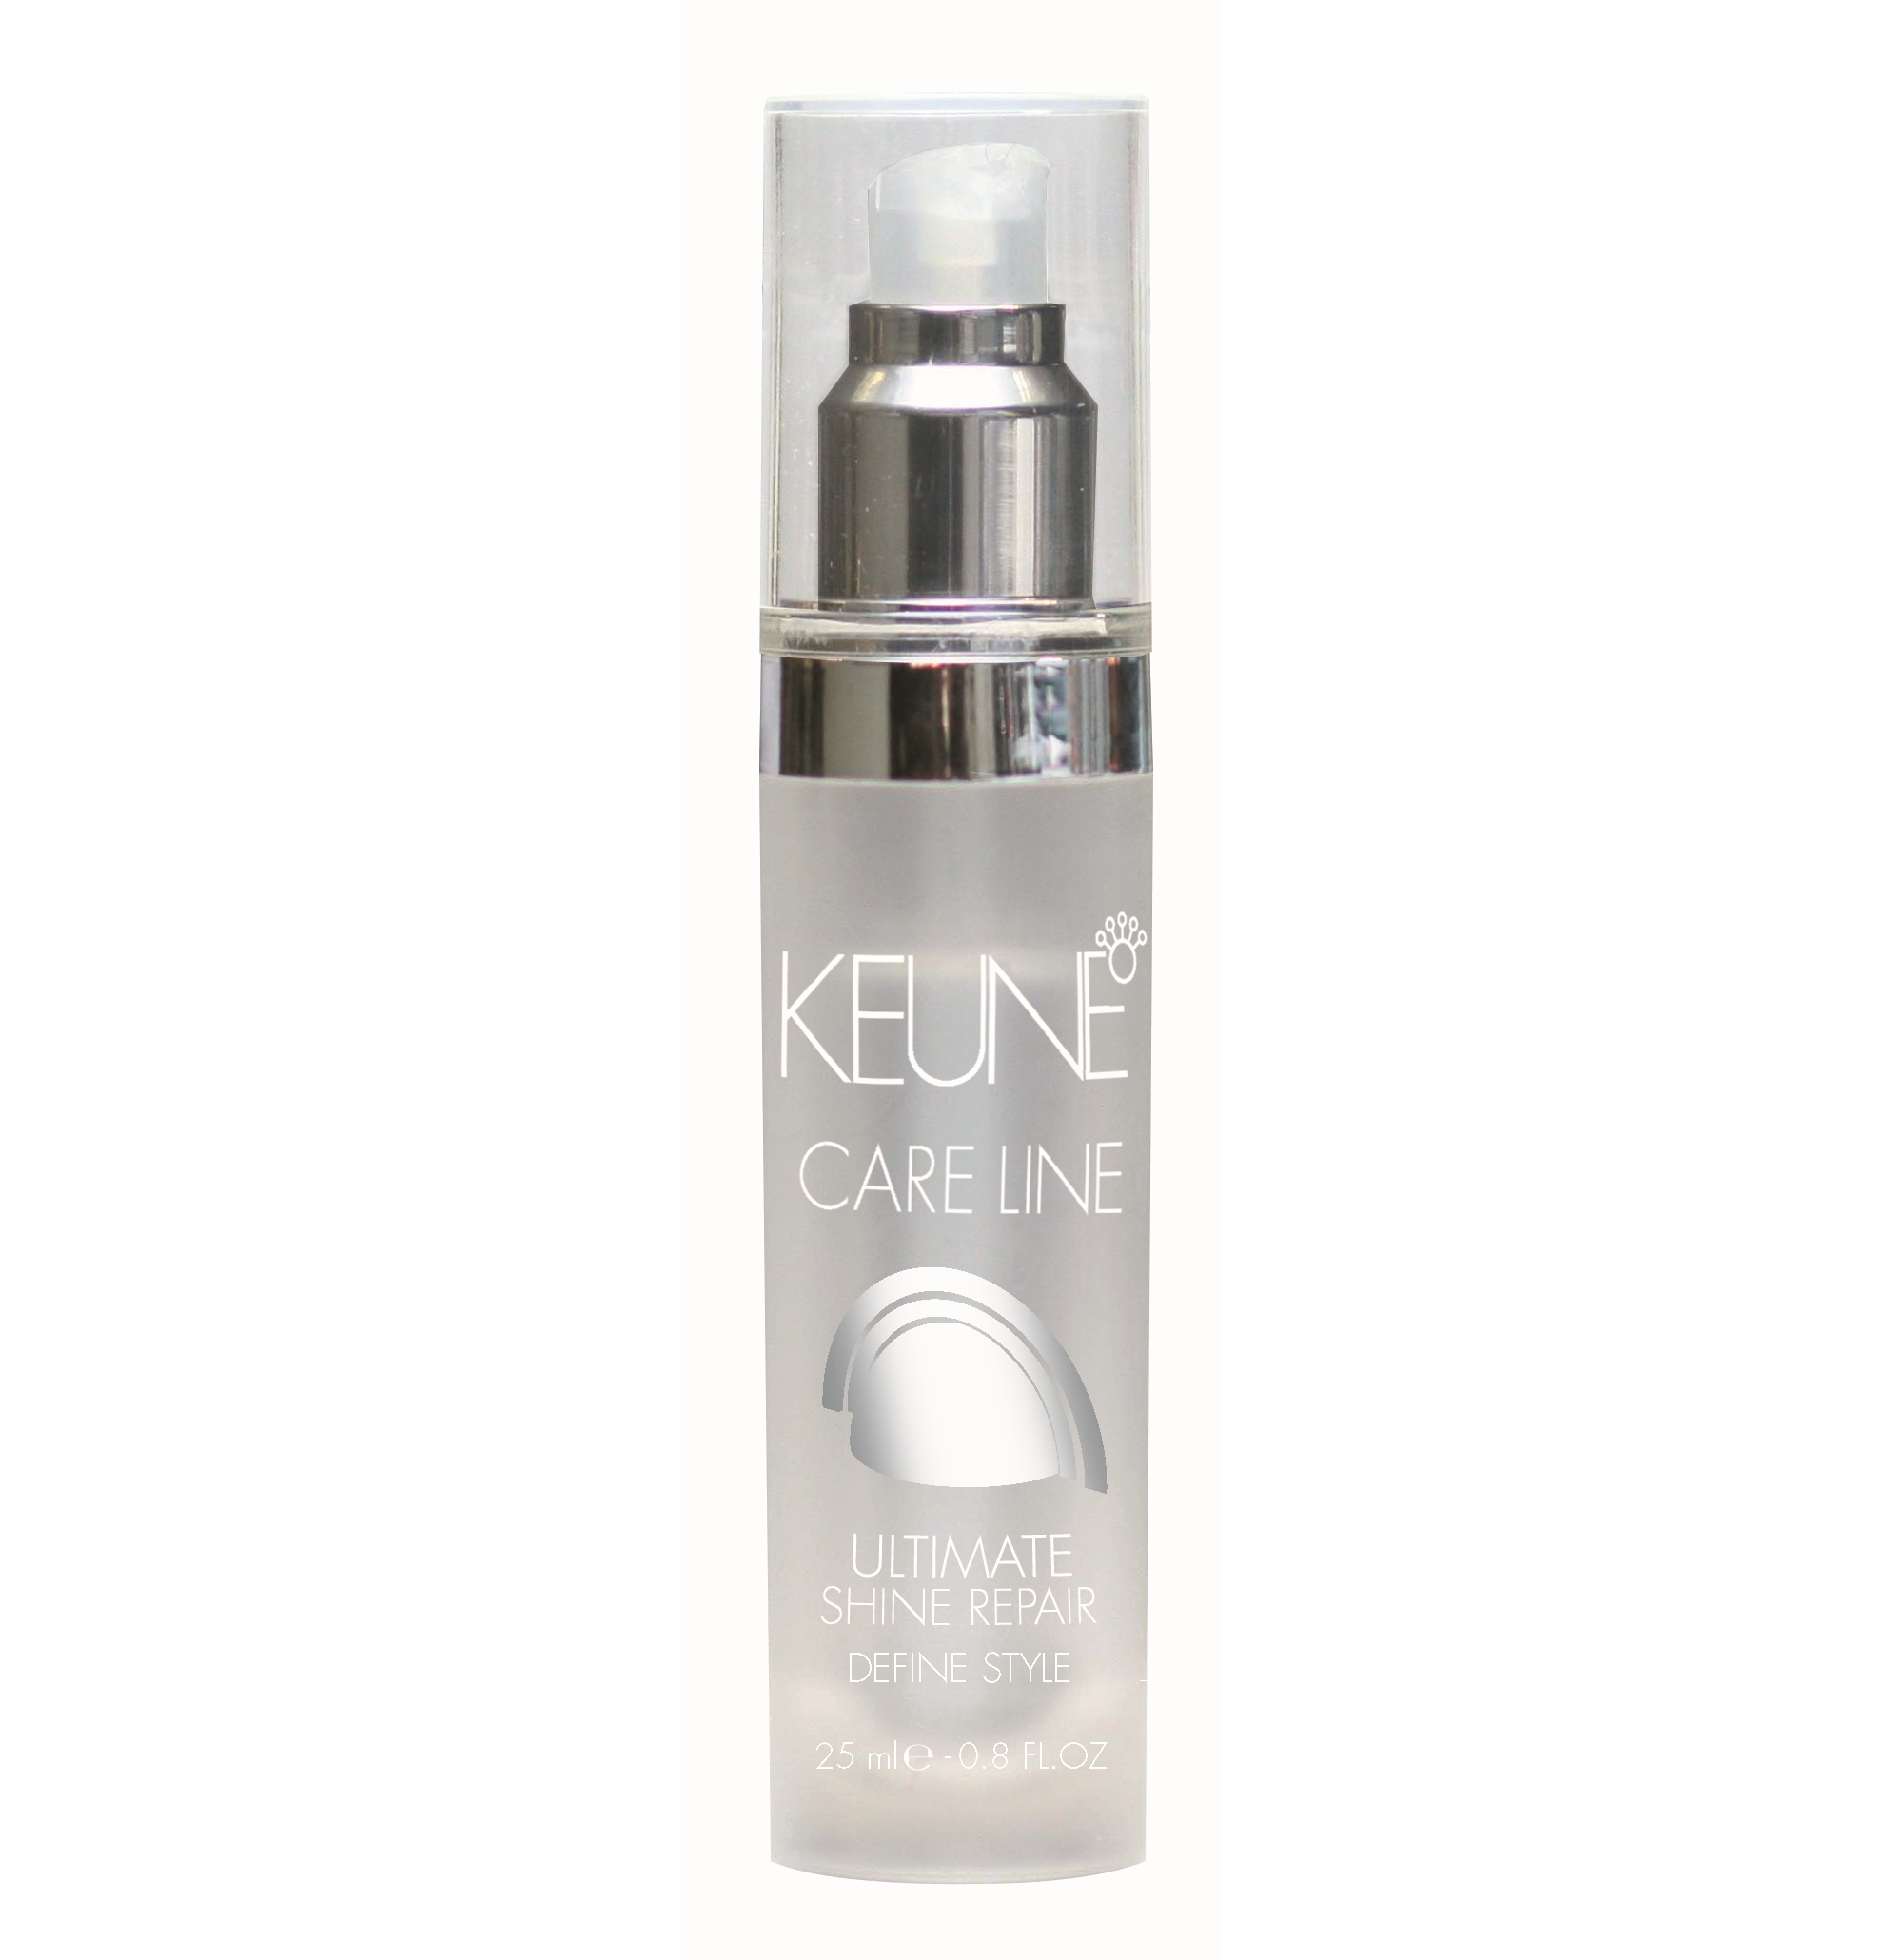 KEUNE Блеск-восстановитель Кэе Лайн / CARE LINE ULTIMATE SHINE REPAIR 25 мл